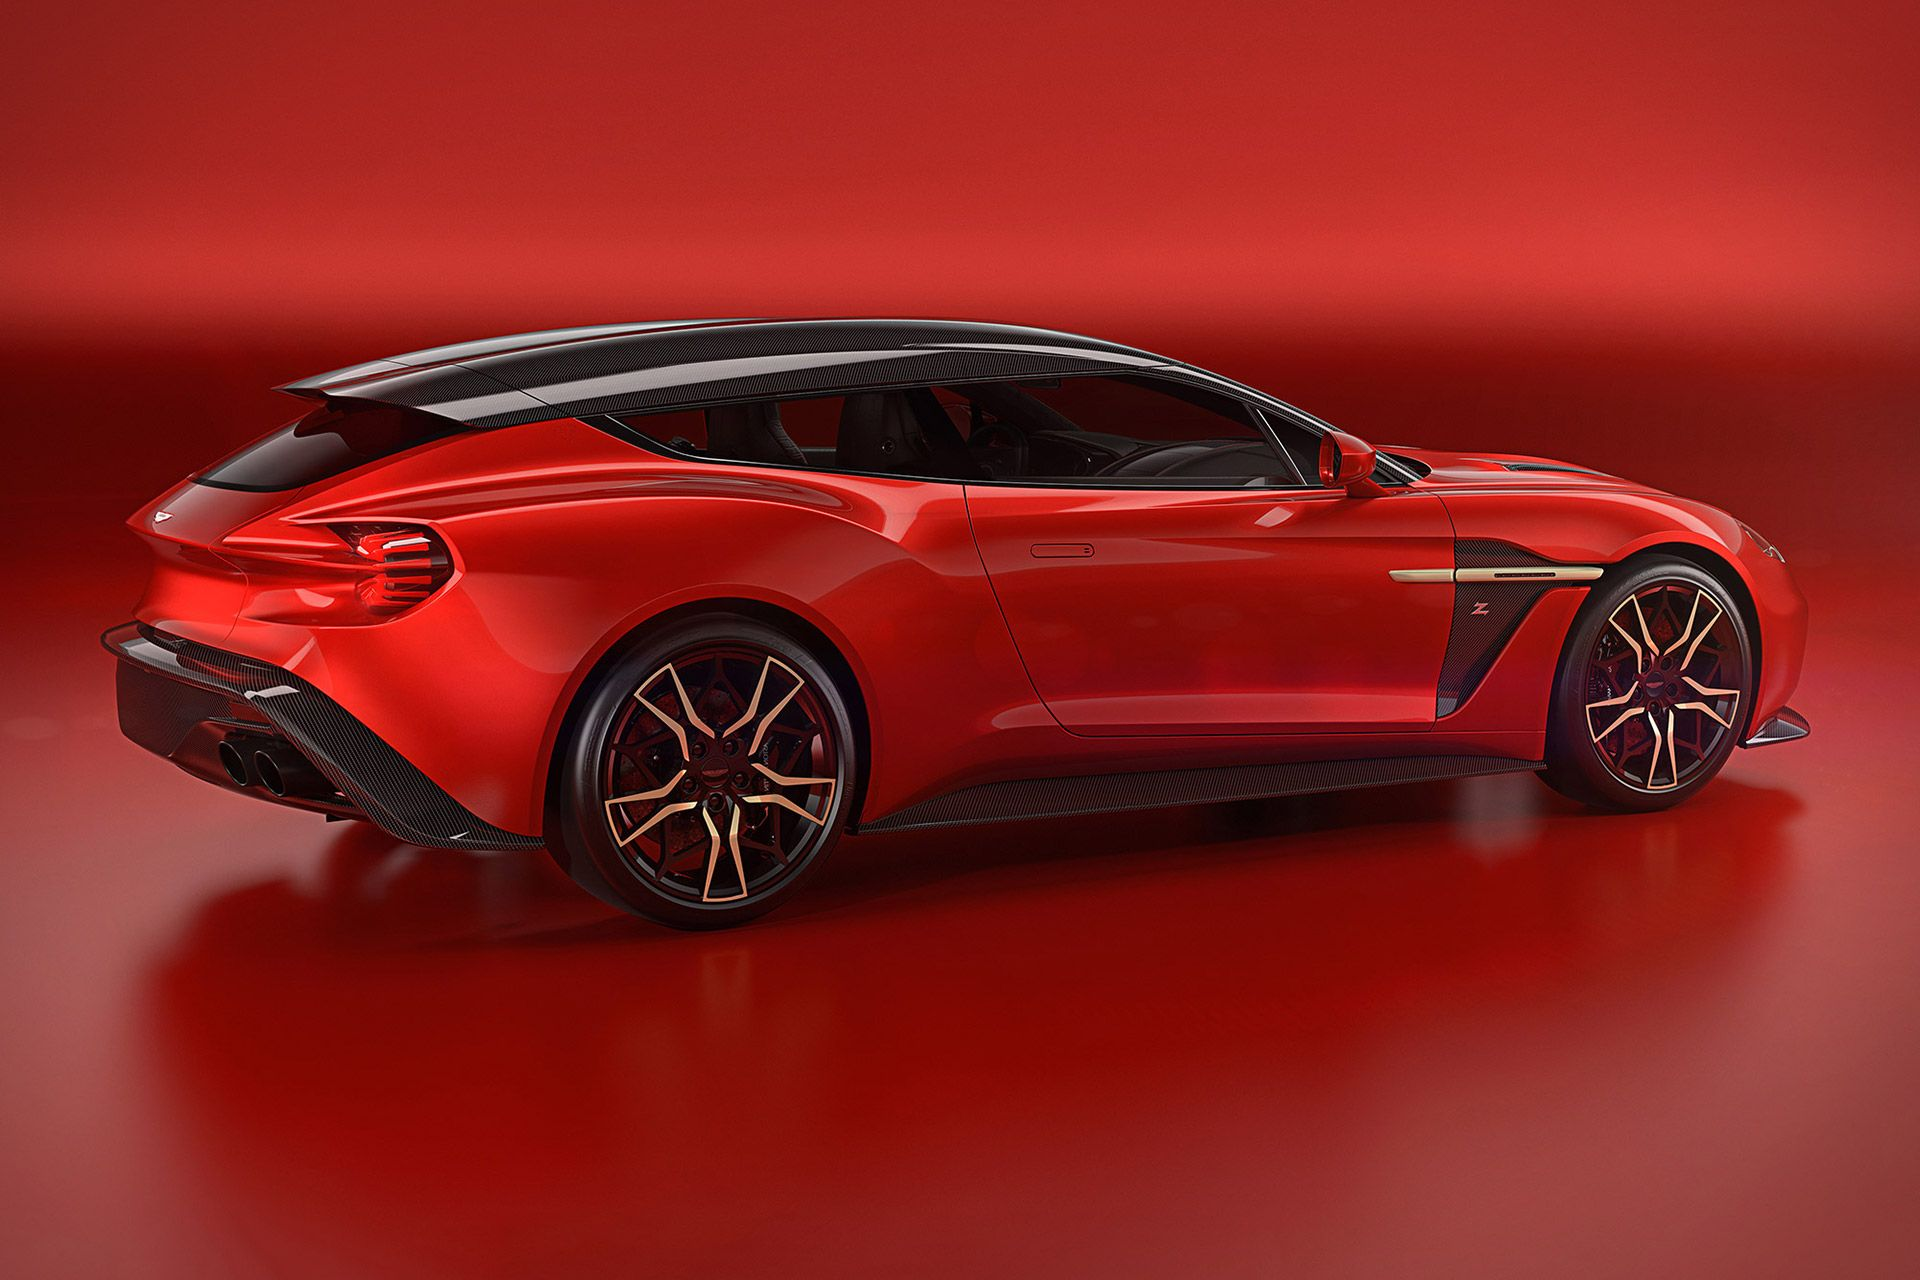 2018 Aston Martin Vanquish Zagato Shooting Brake Cars